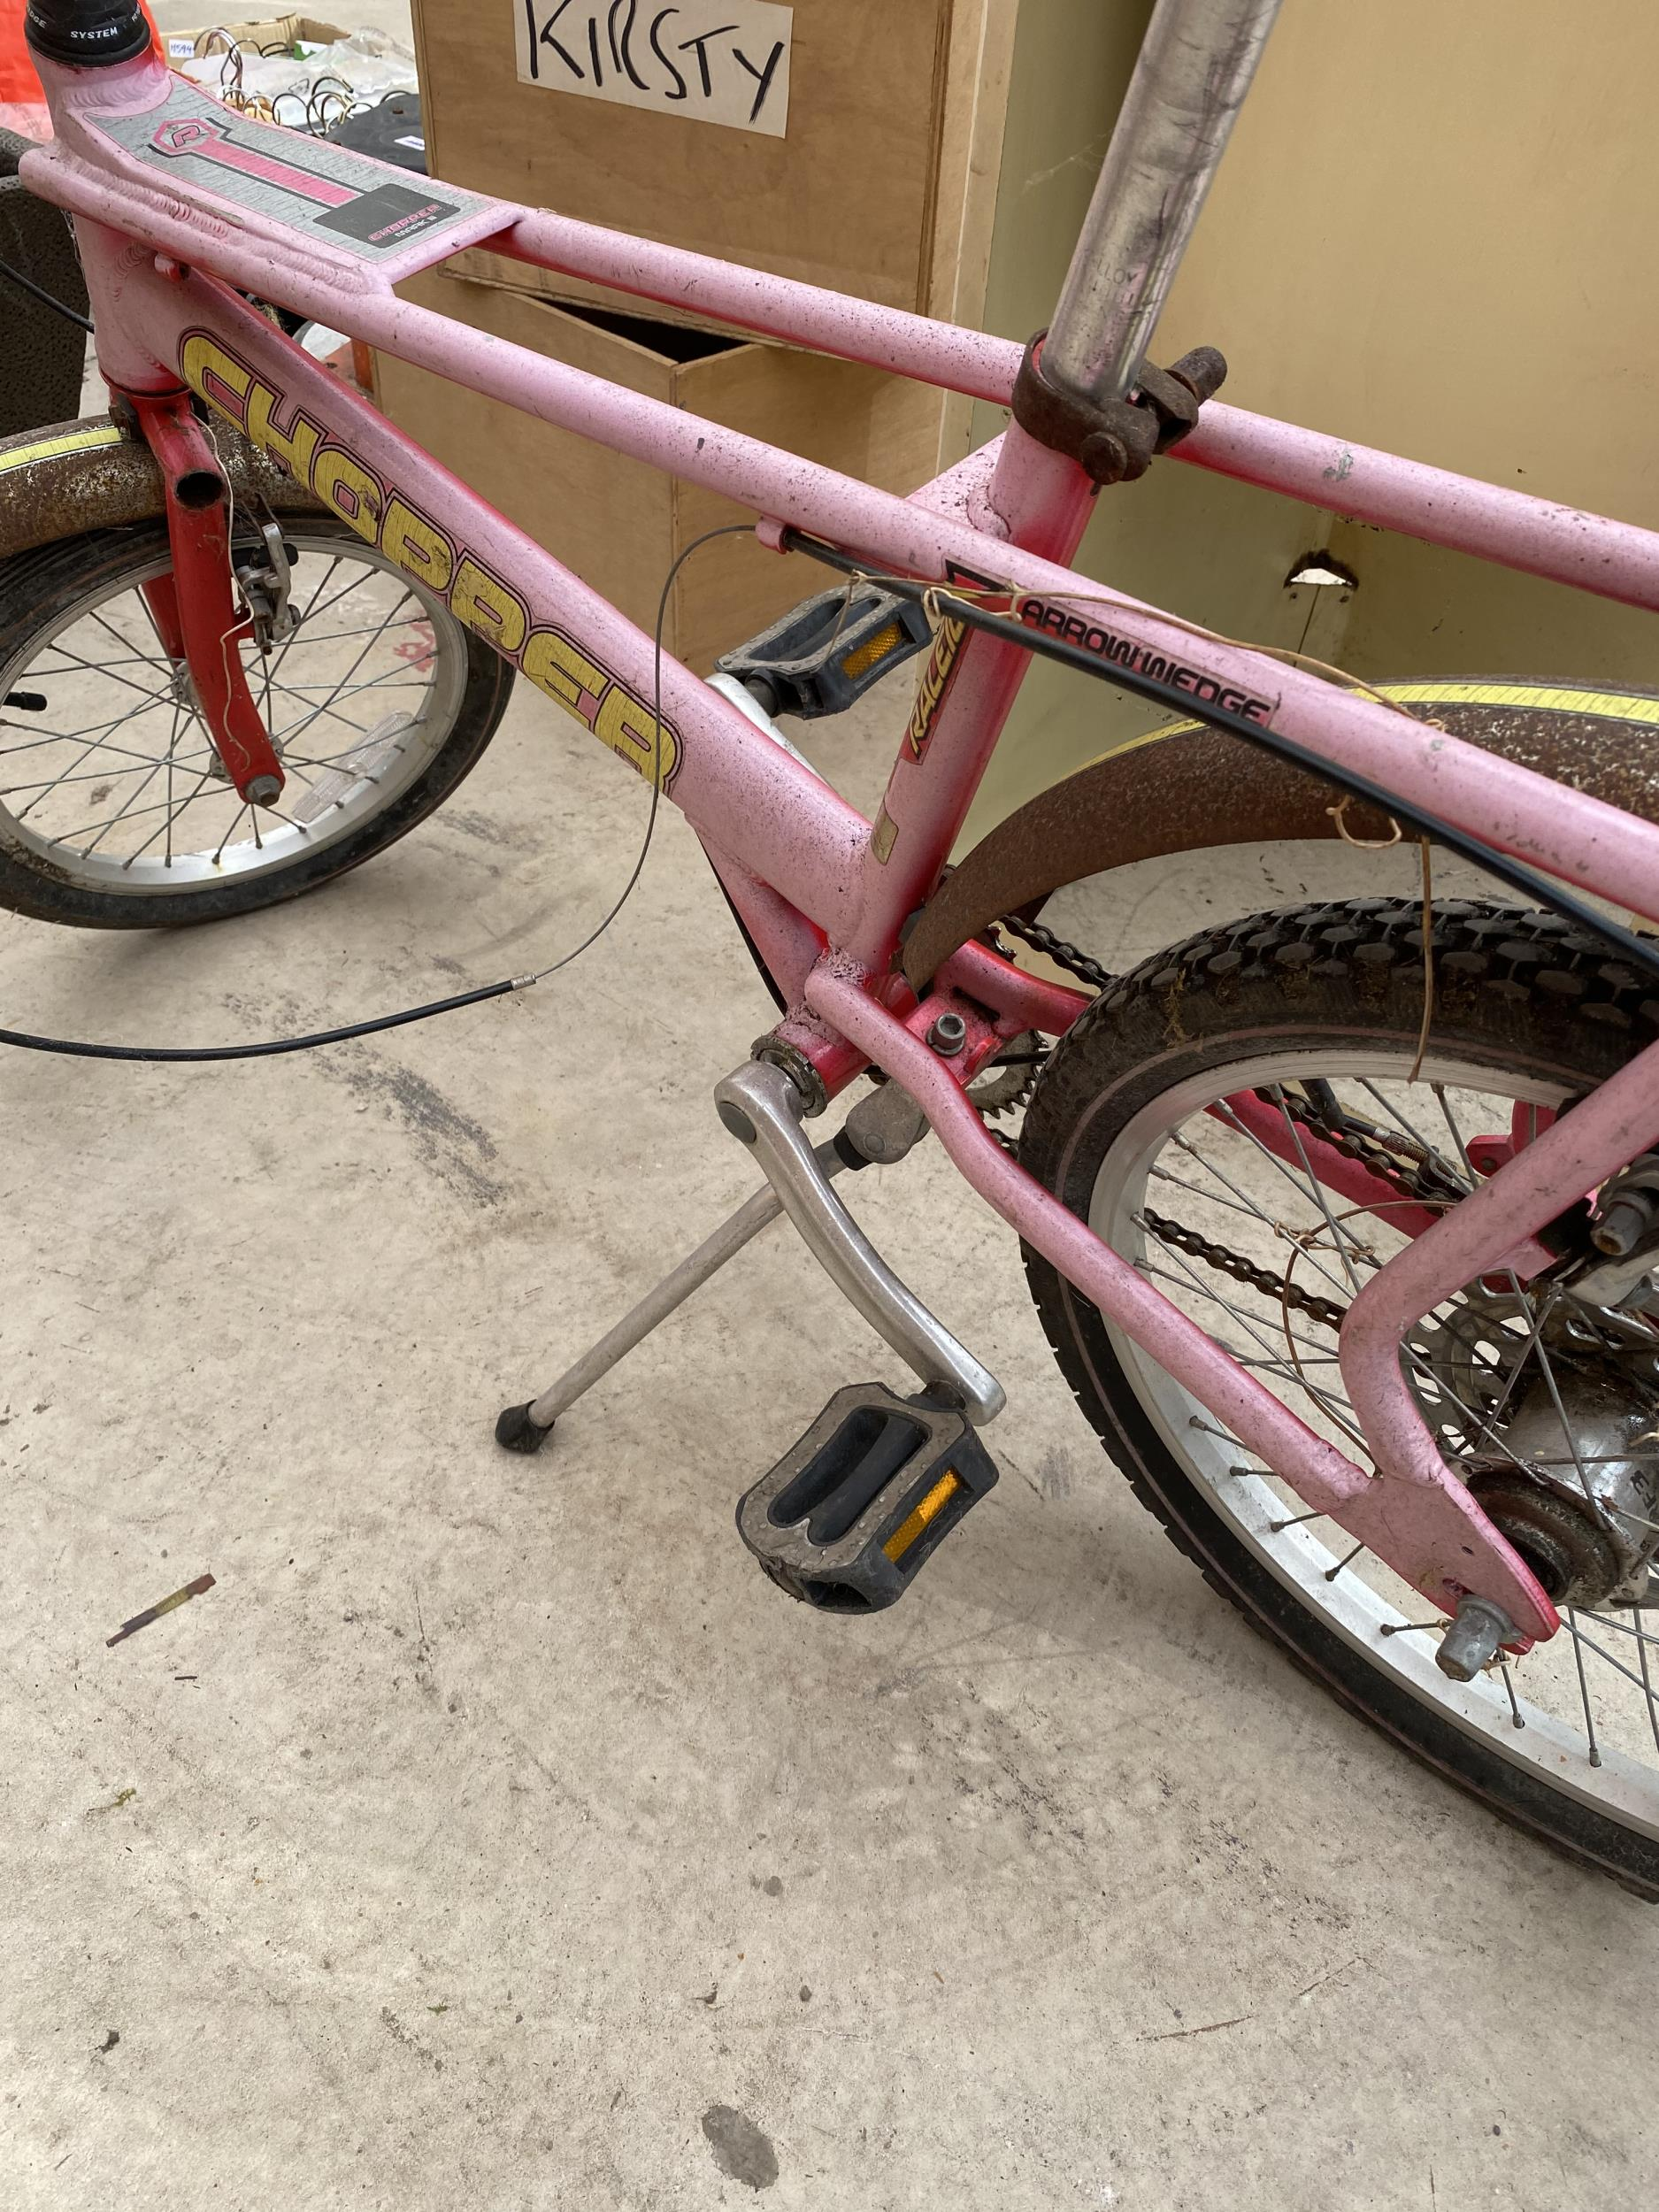 A RALEIGH CHOPPER MARK 3 BICYCLE - Image 6 of 7